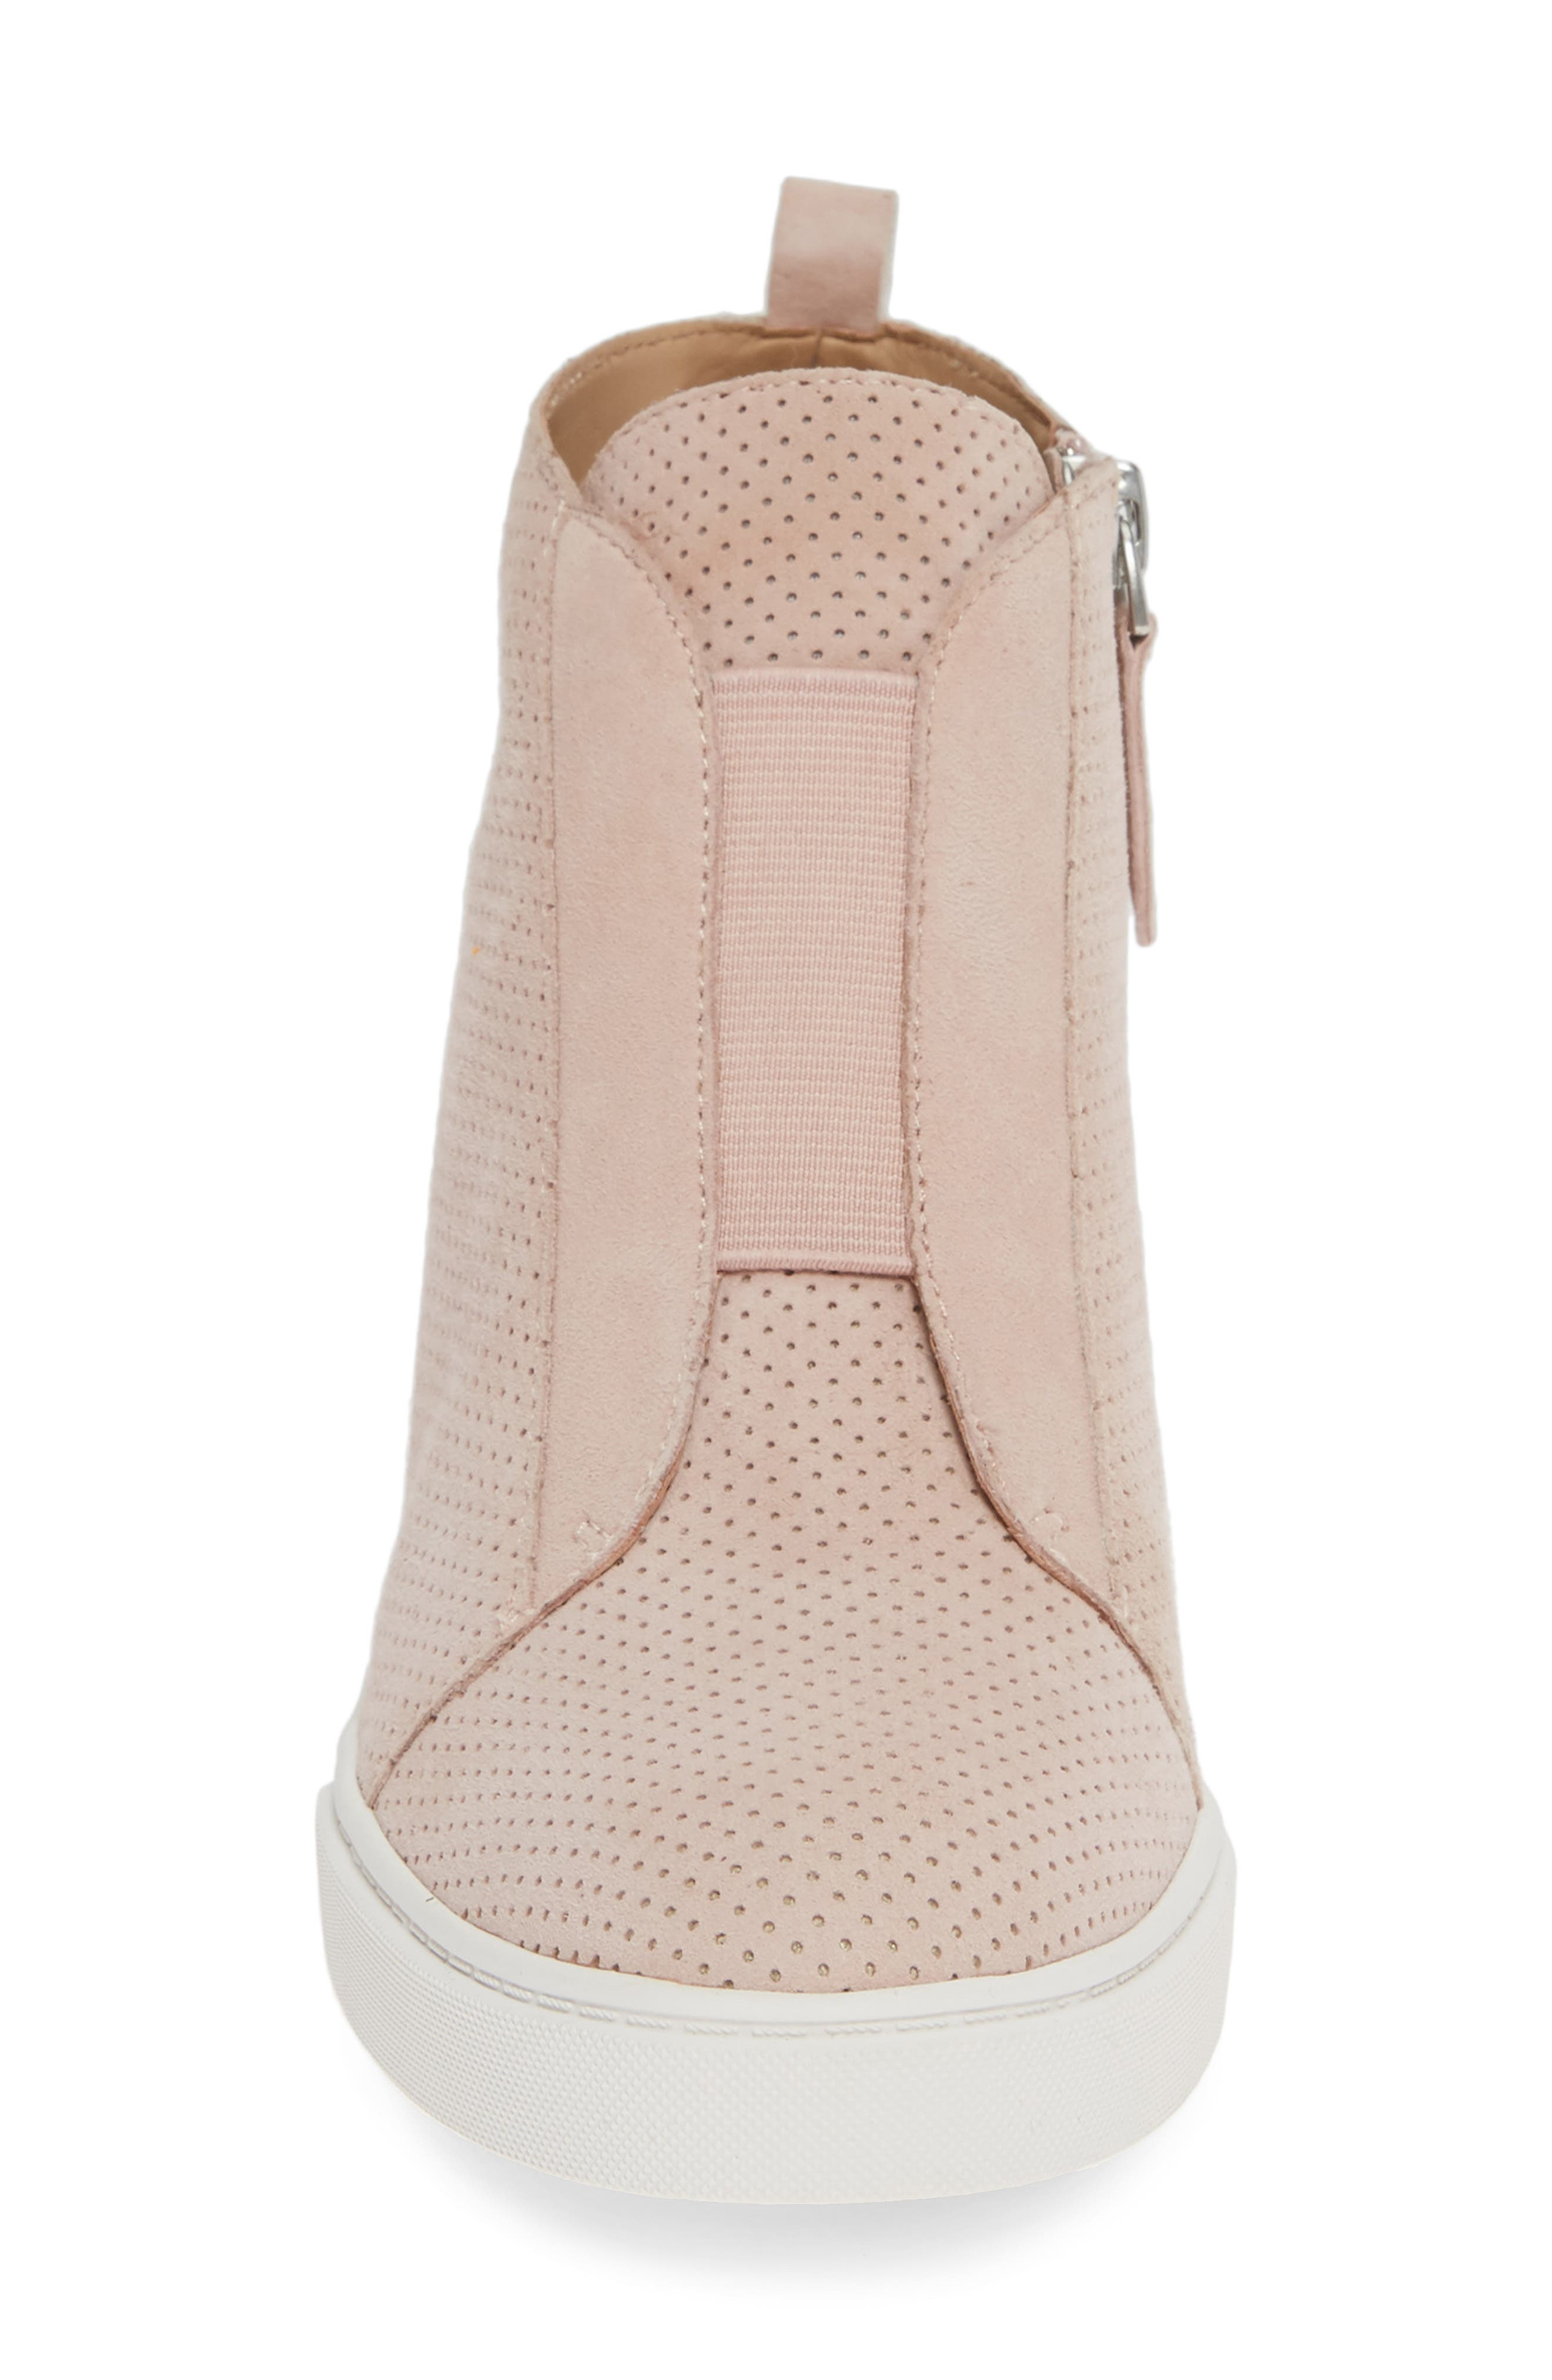 LINEA PAOLO, Felicia Wedge Bootie, Alternate thumbnail 4, color, BLUSH PERFORATED SUEDE